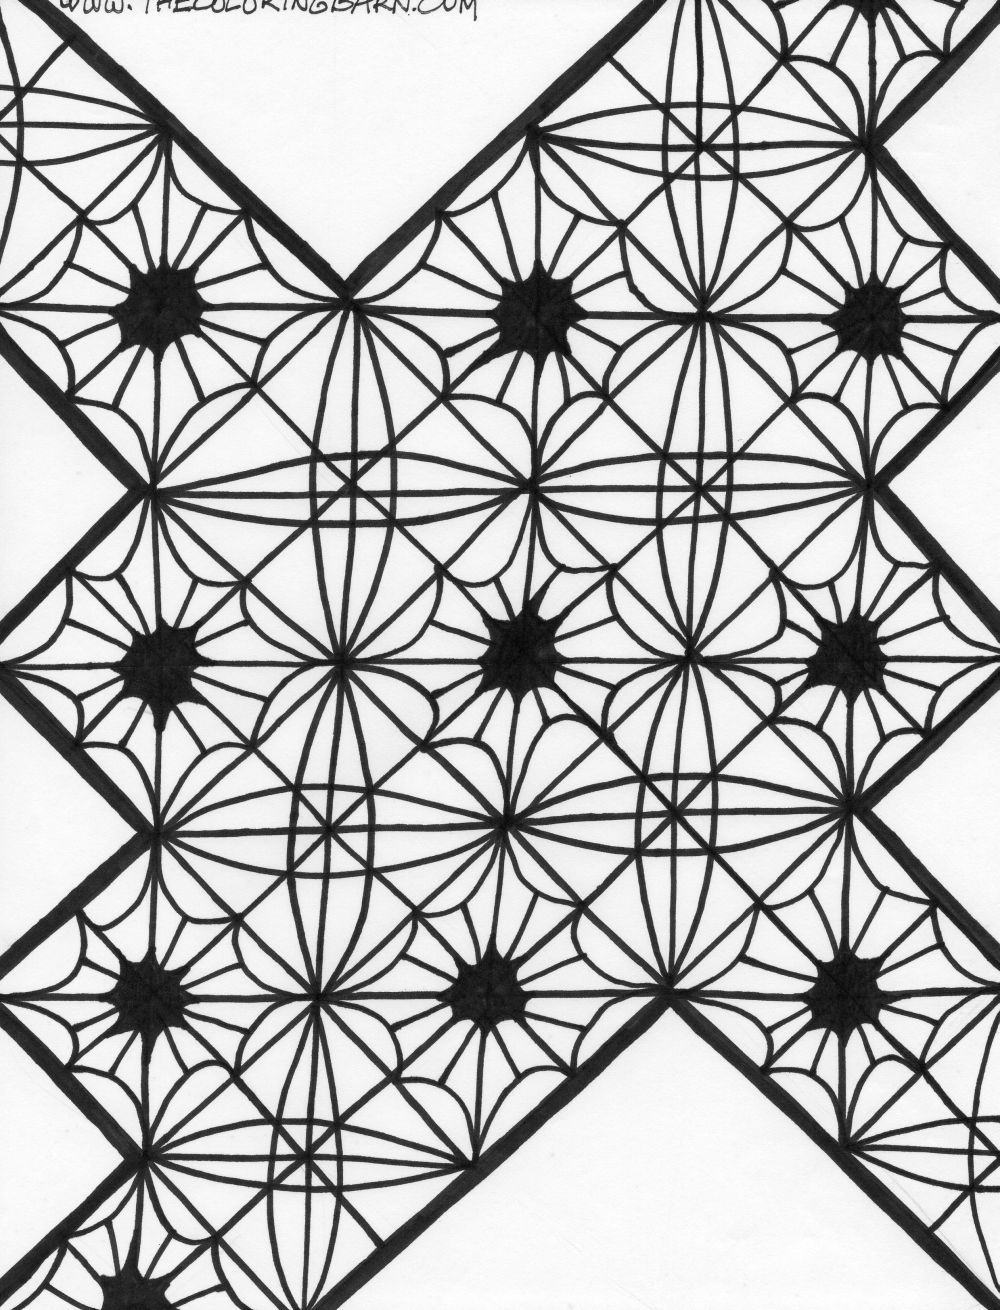 Kaleidoscope Coloring Pages – 1000×1310 Coloring picture animal and ... Find awesome coloring pages at TheColoringBarn.com!